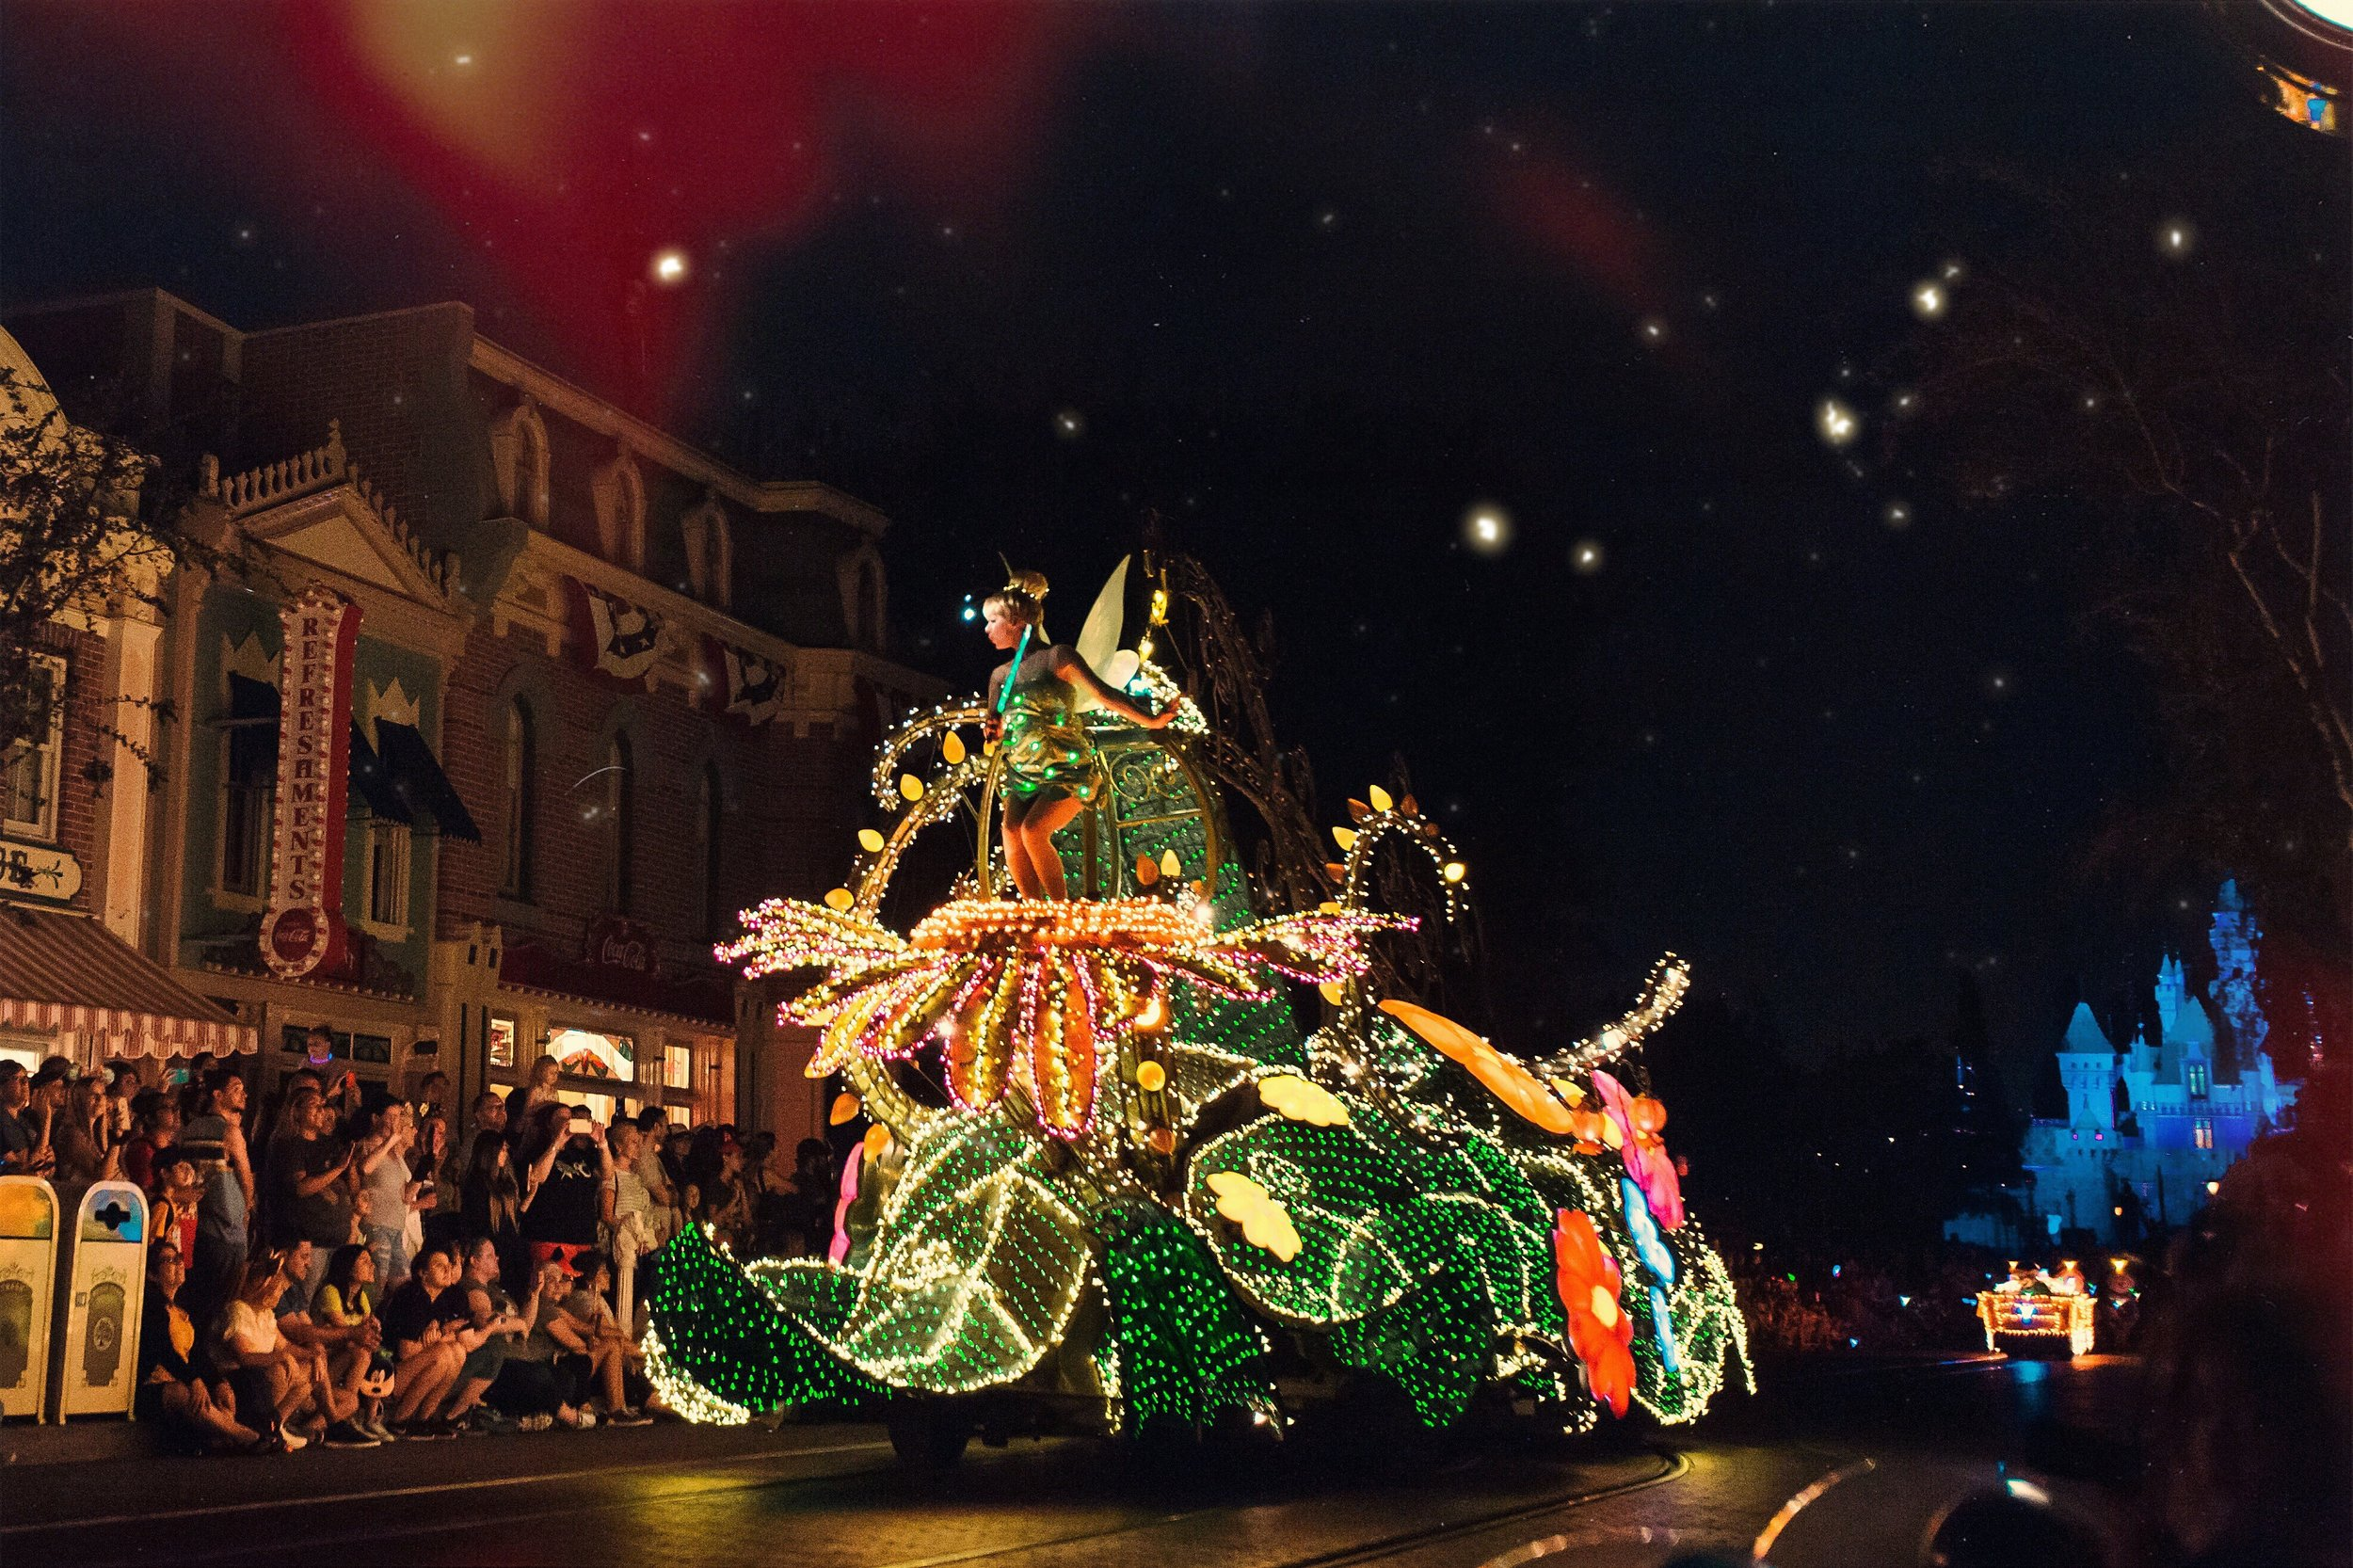 disneyland electrical parade